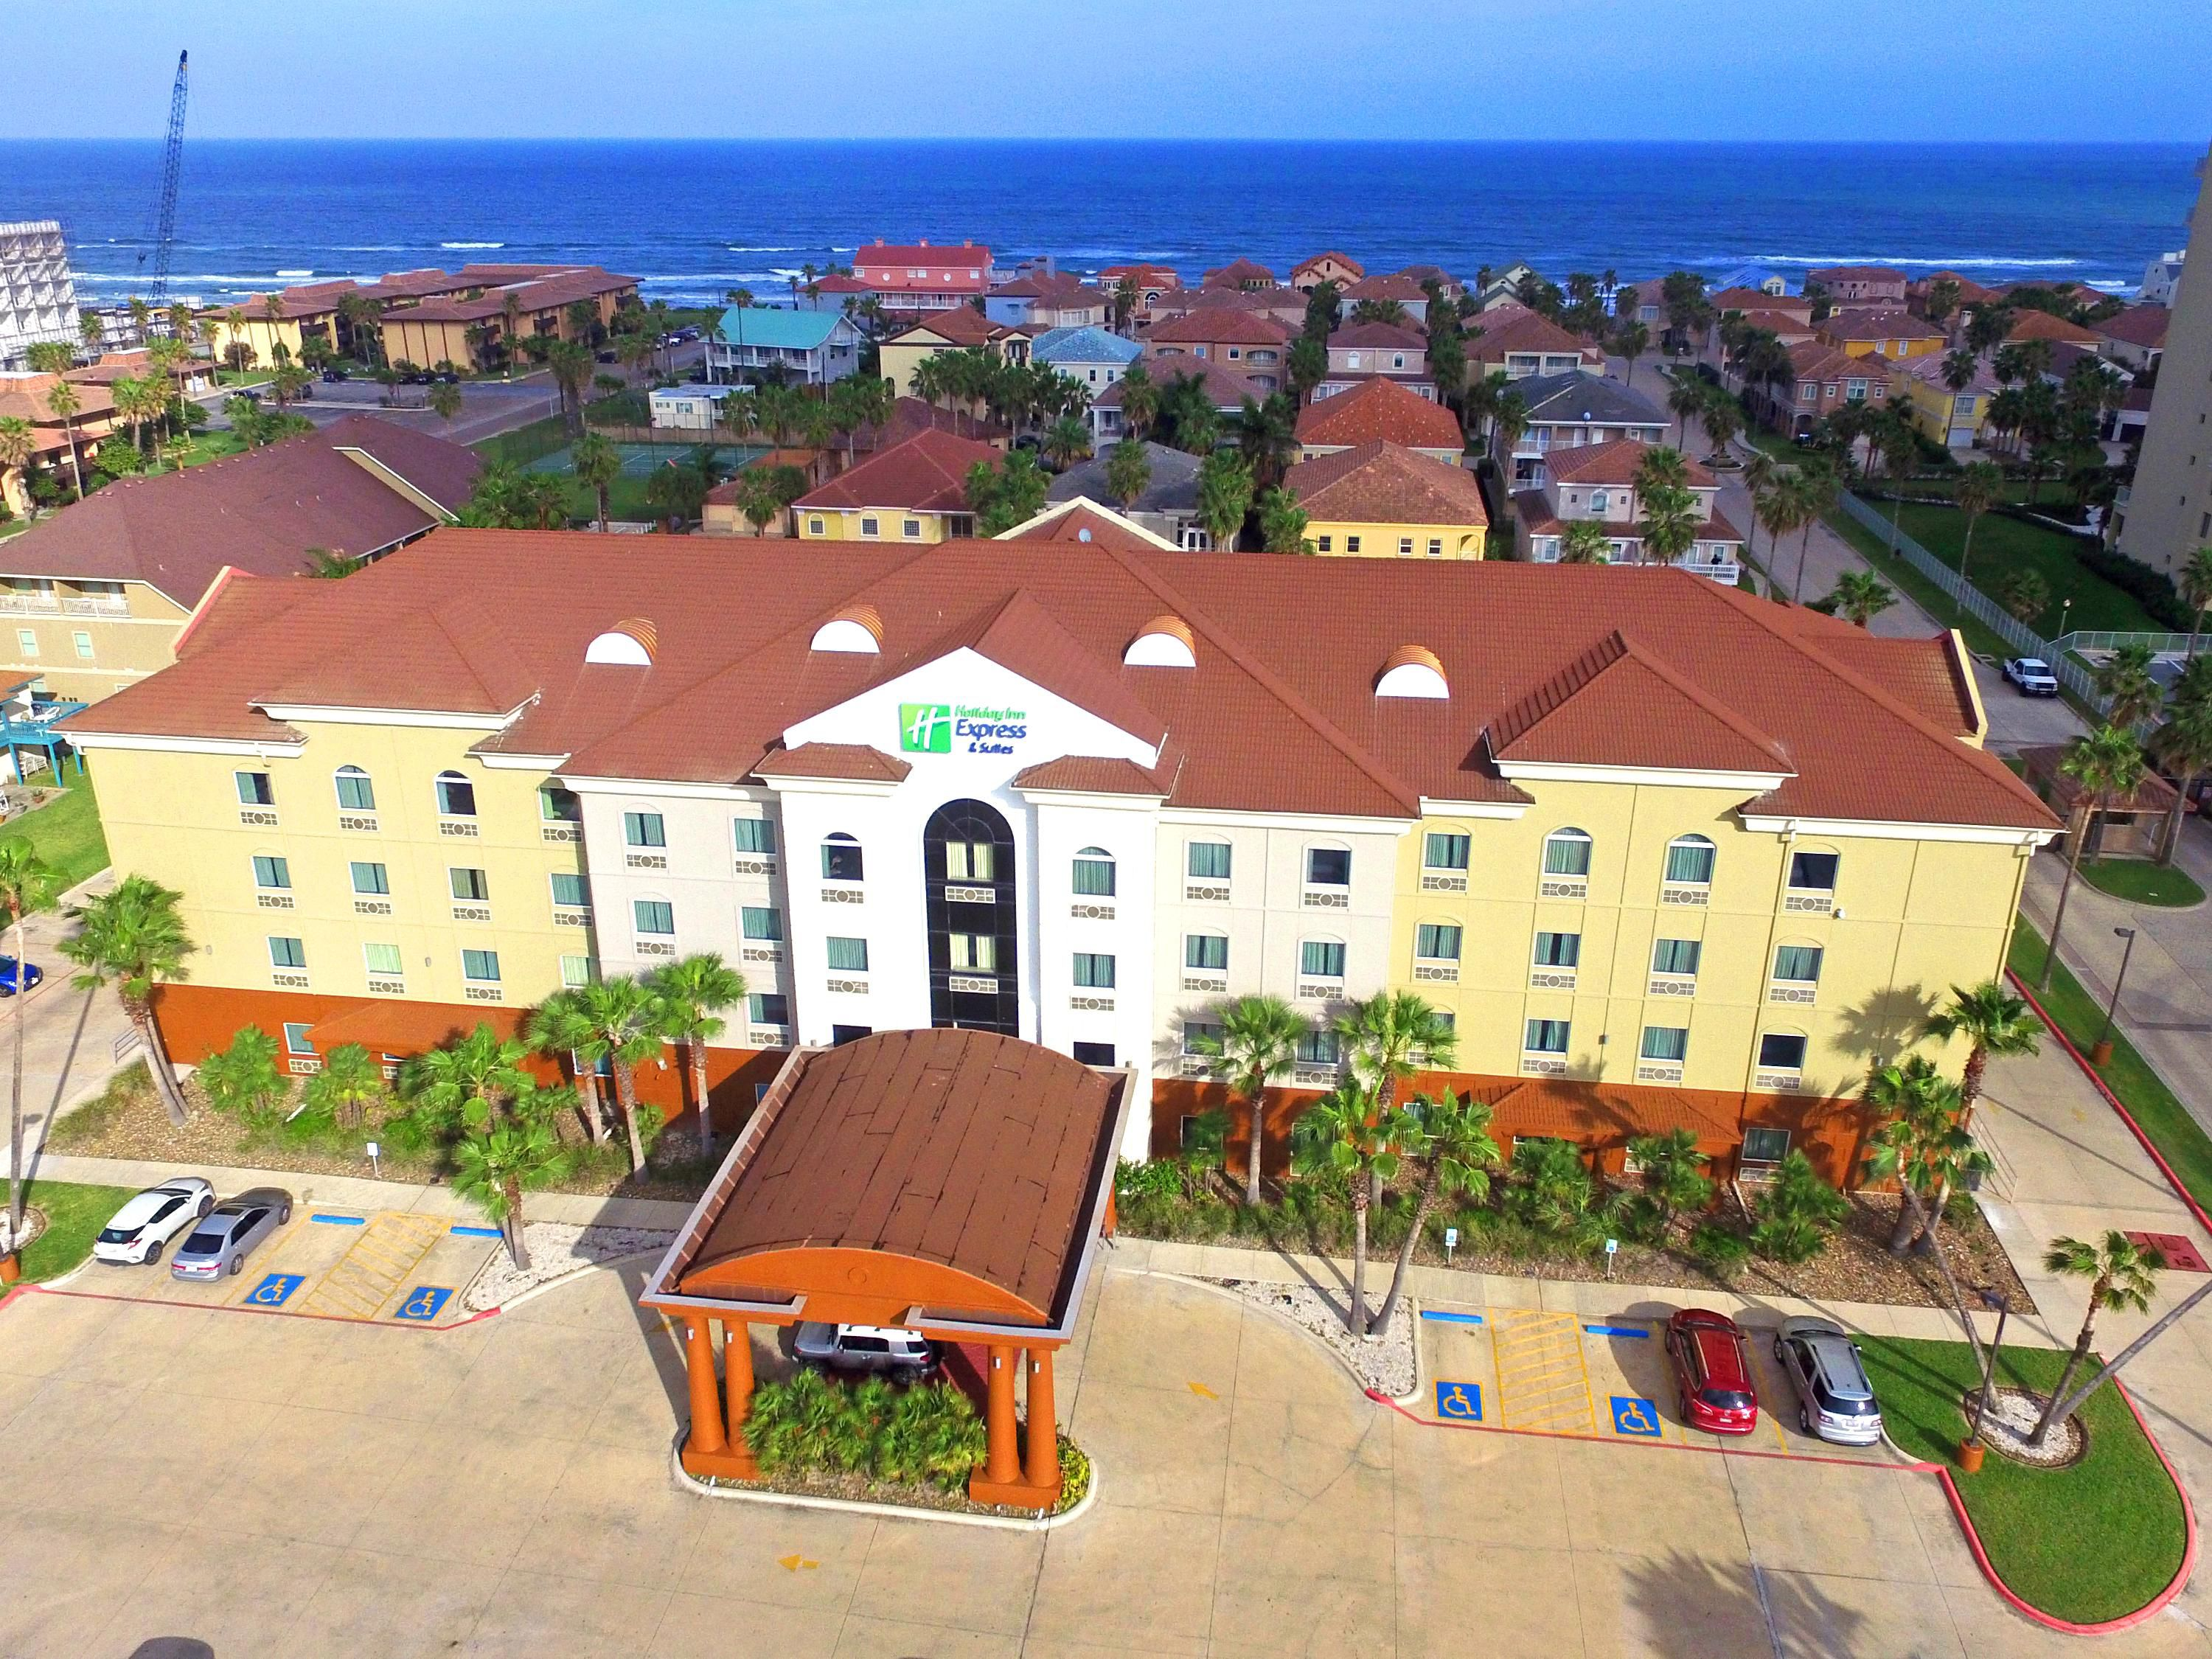 Holiday Inn Express Brownsville Hotels | Budget Hotels in